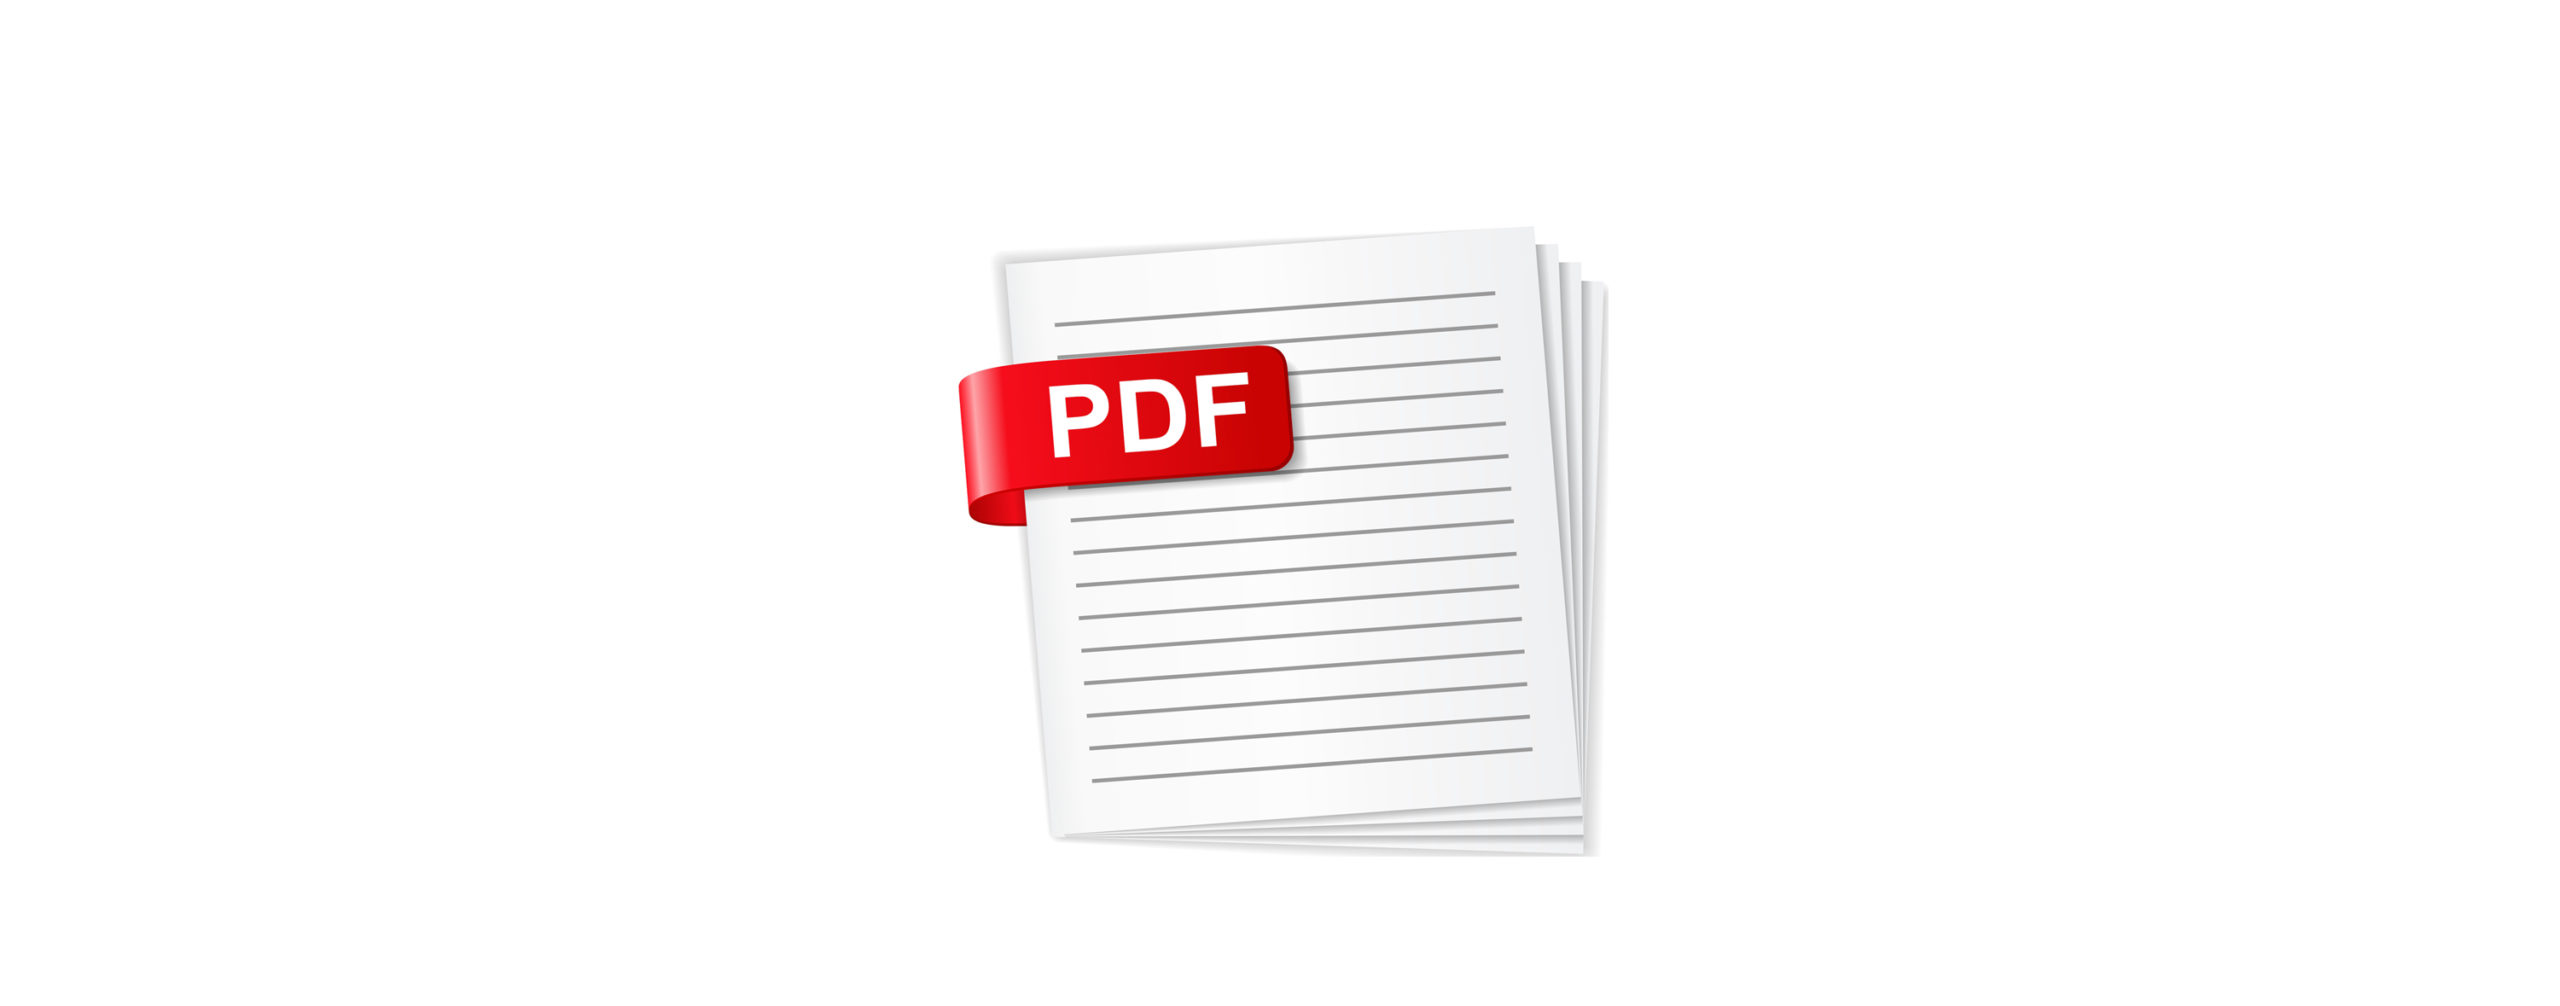 Hackers Access Data From PDF Viewers